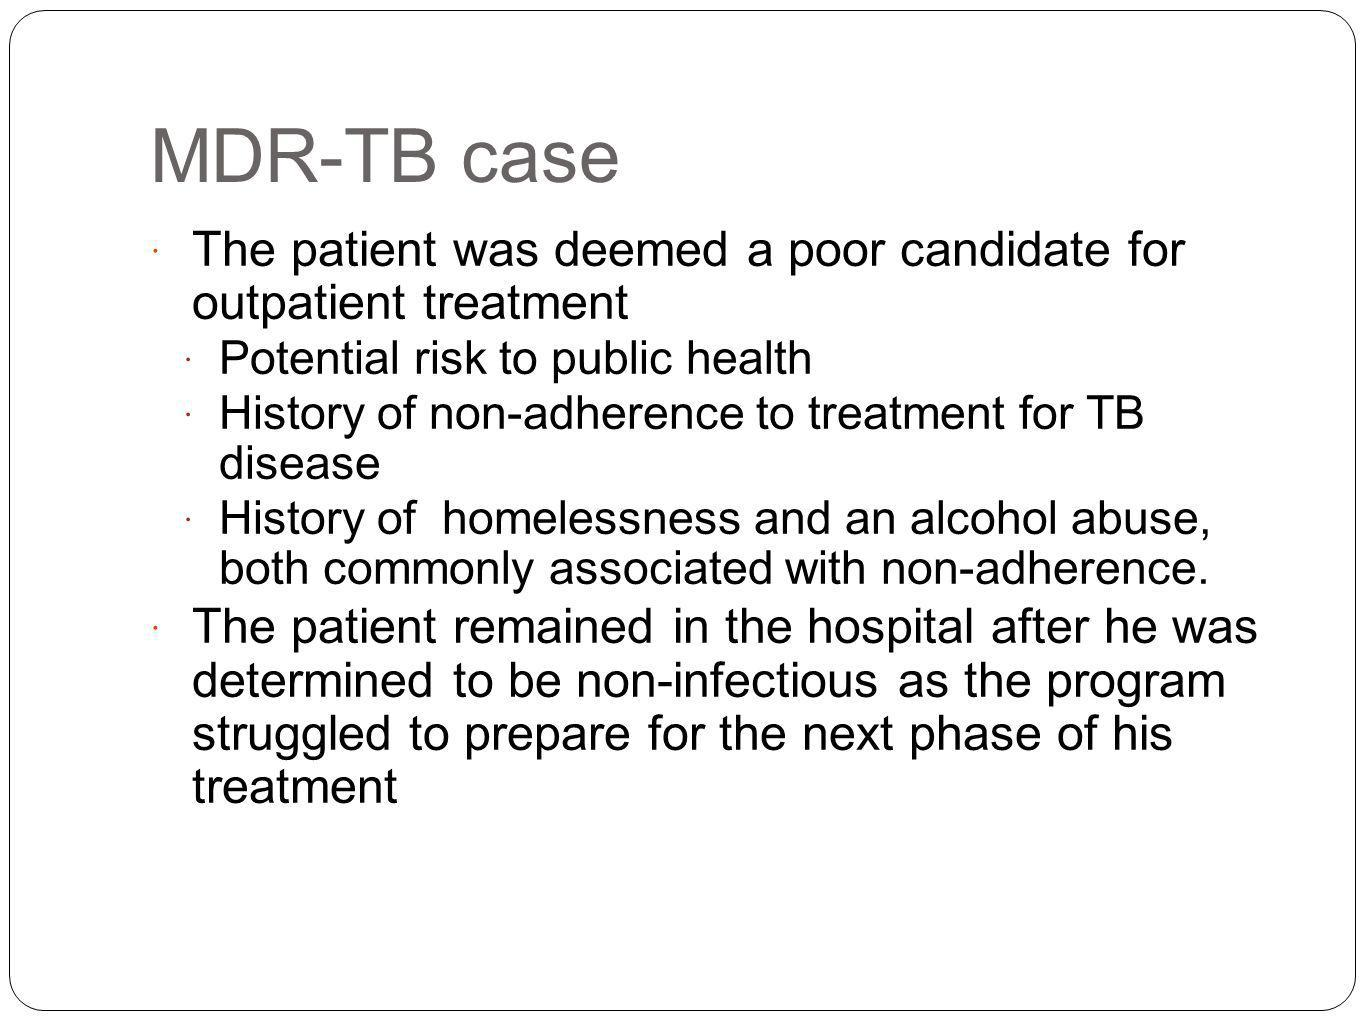 MDR-TB case The patient was deemed a poor candidate for outpatient treatment Potential risk to public health History of non-adherence to treatment for TB disease History of homelessness and an alcohol abuse, both commonly associated with non-adherence.